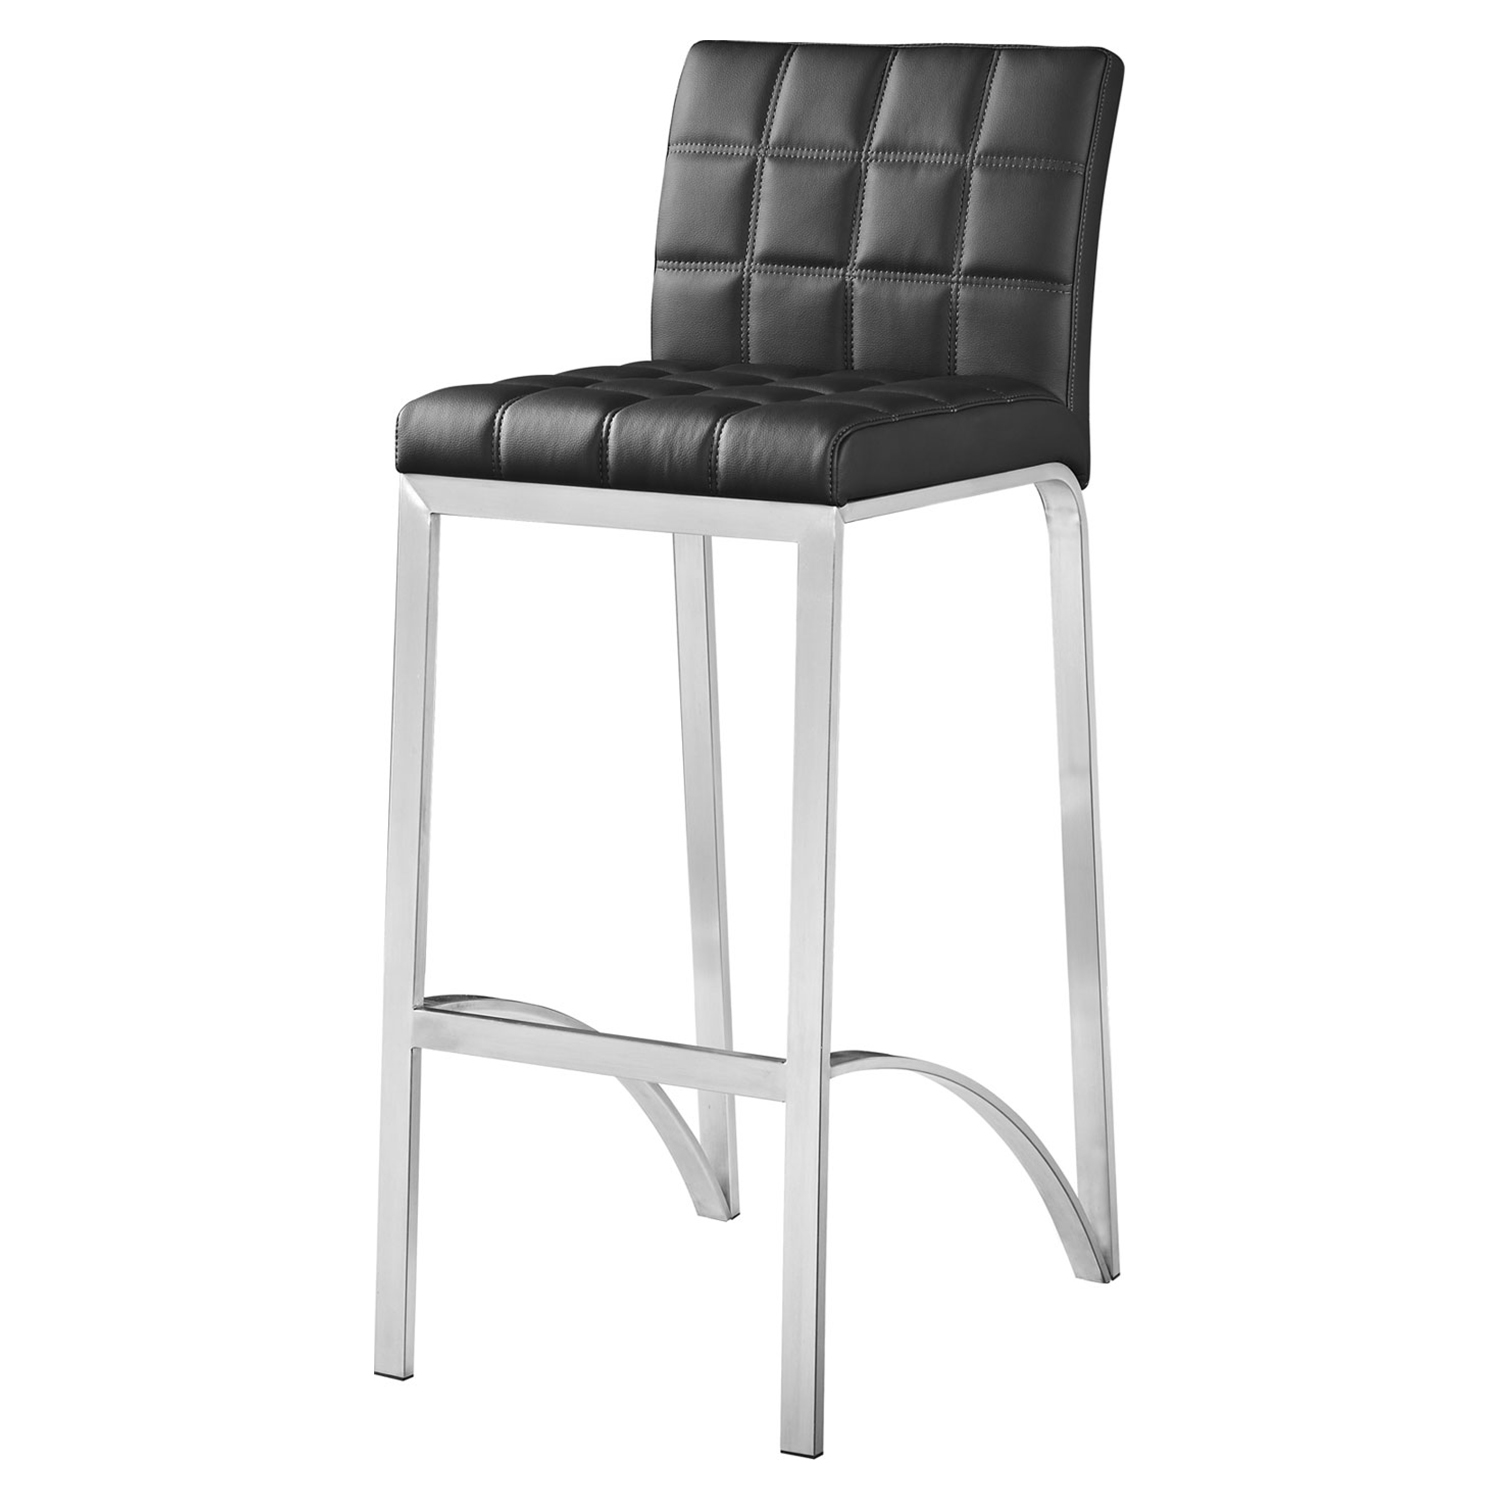 Lincoln Bar Stool - Black Leather Look, Stainless Steel - BROM-BF3210BL